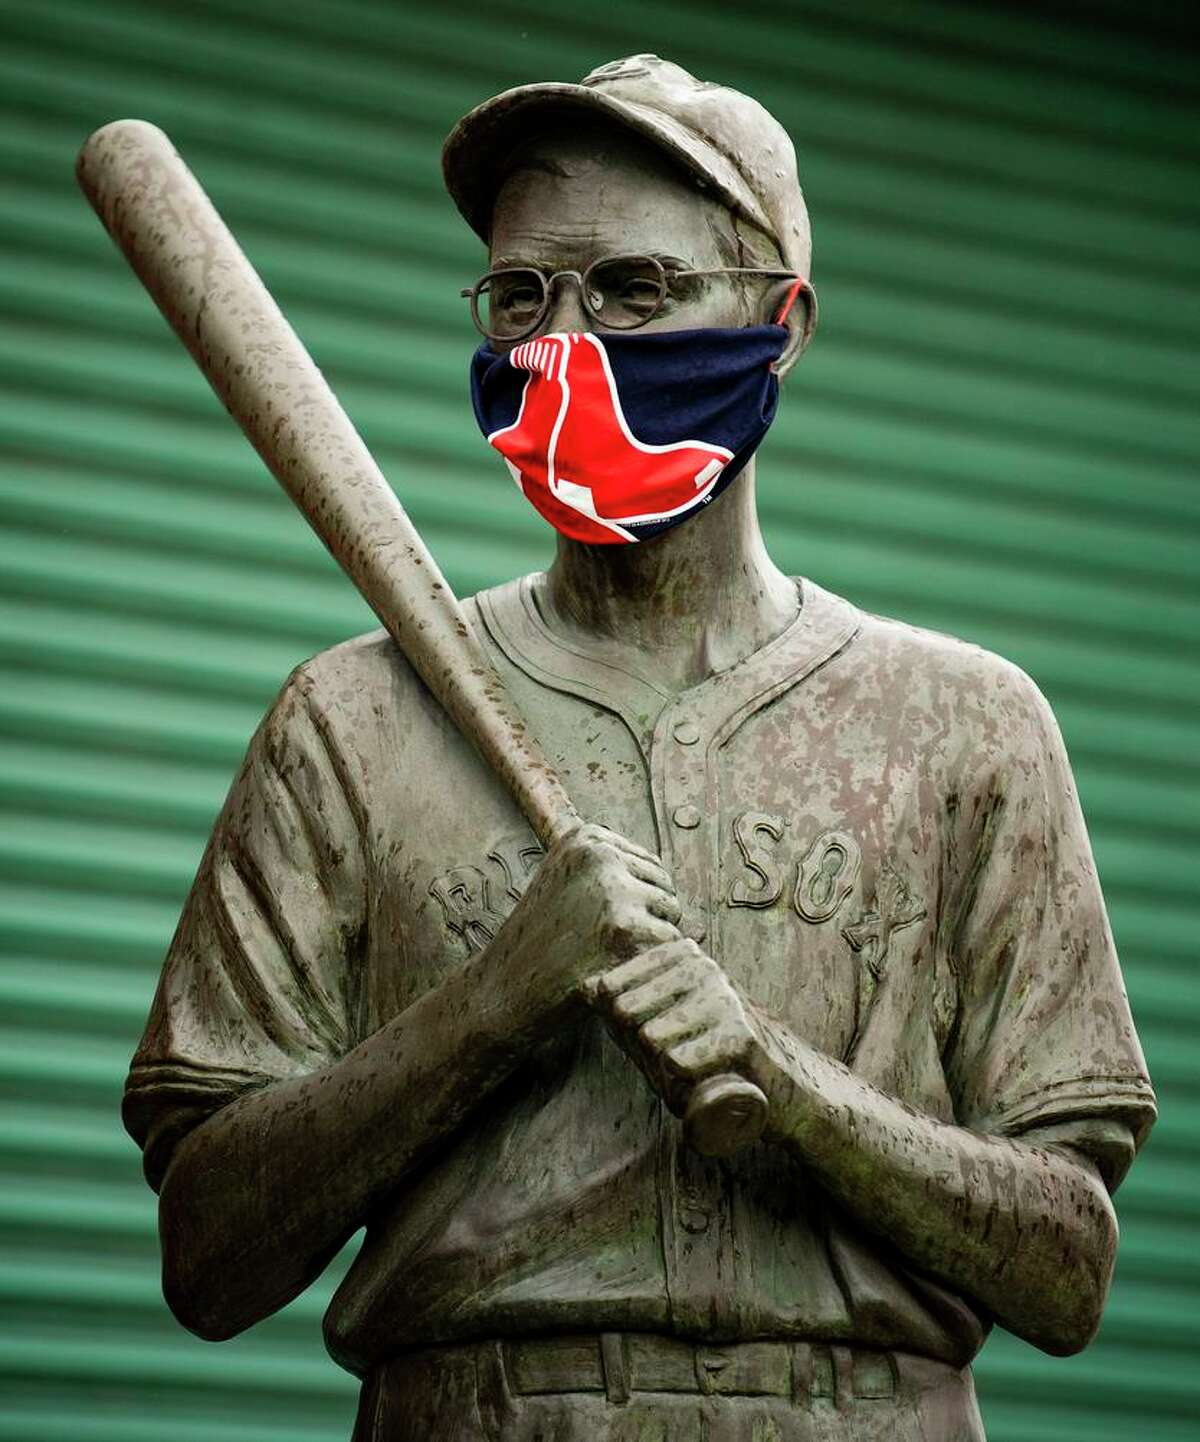 Even Dom DiMaggio - or at least, his statue outside Fenway Park in Boston - is wearing a mask.